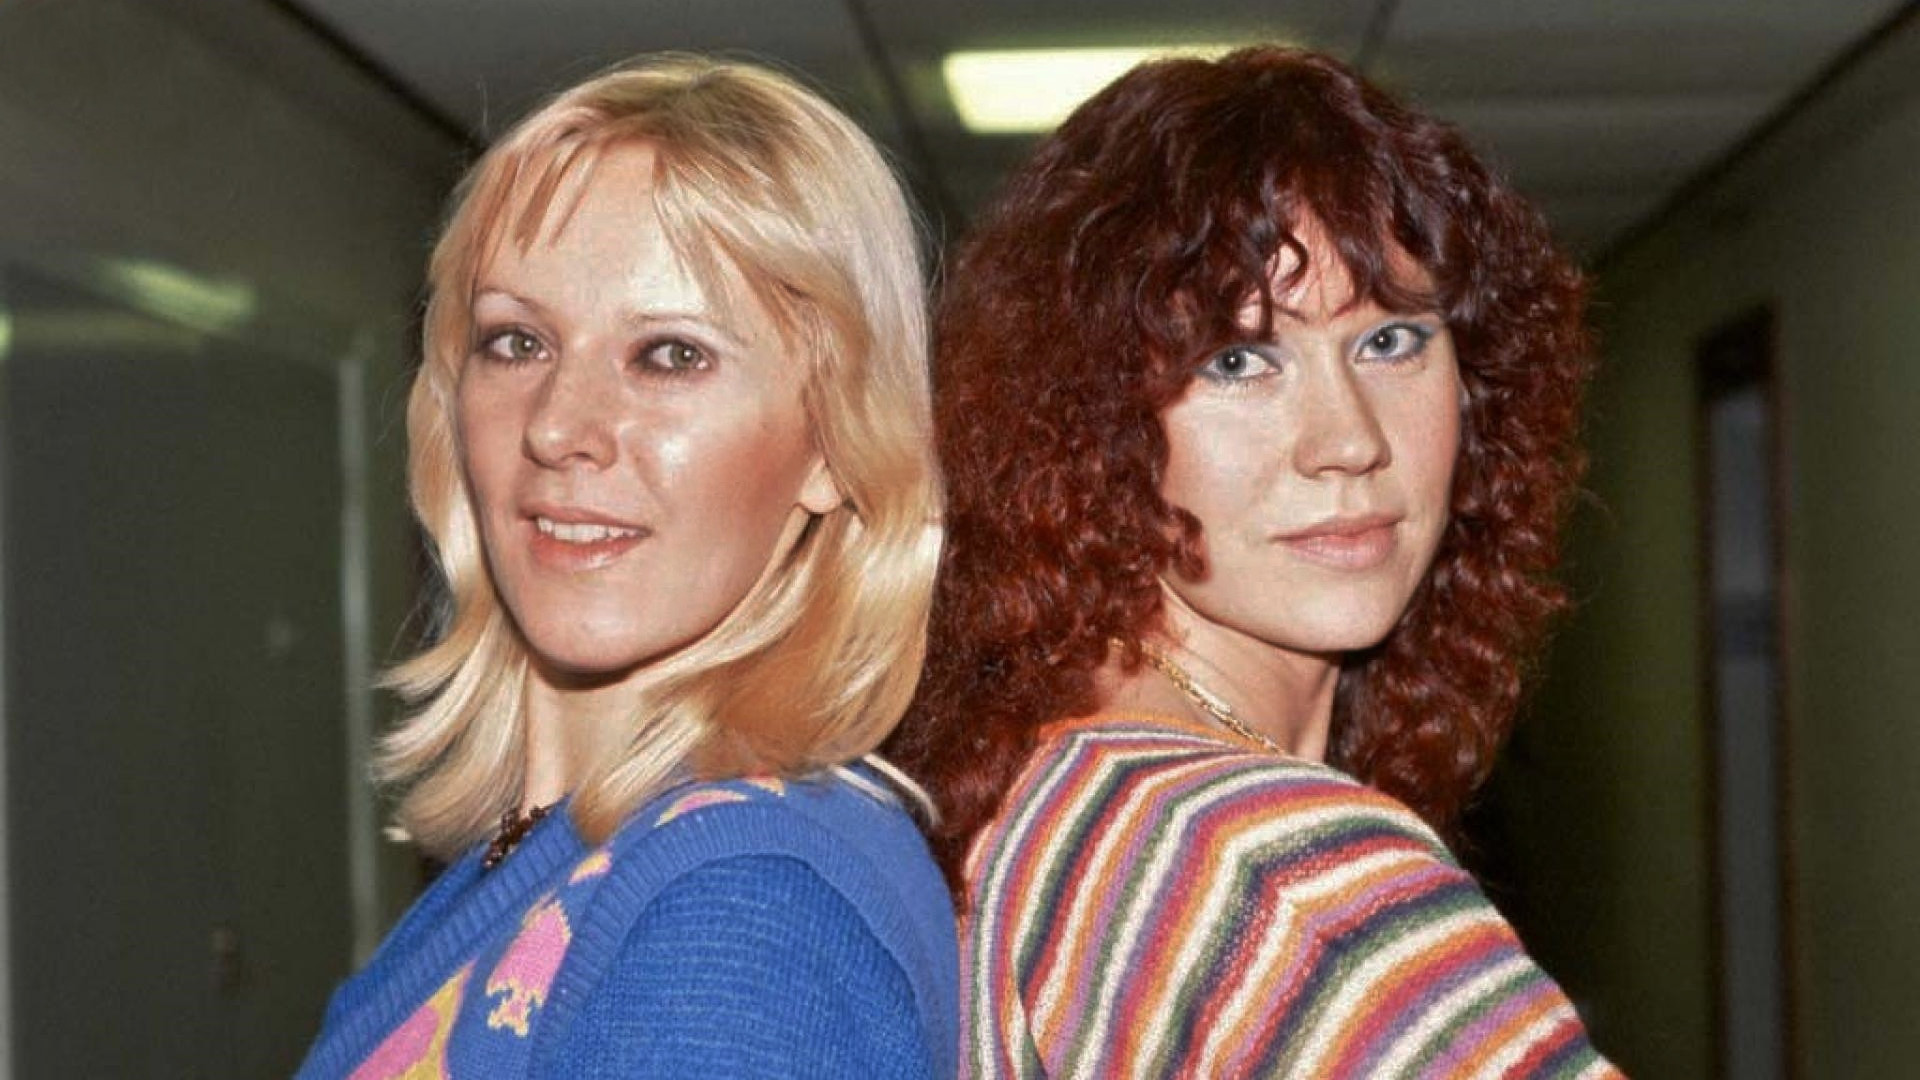 Agnetha and Frida Switched 1920x1080